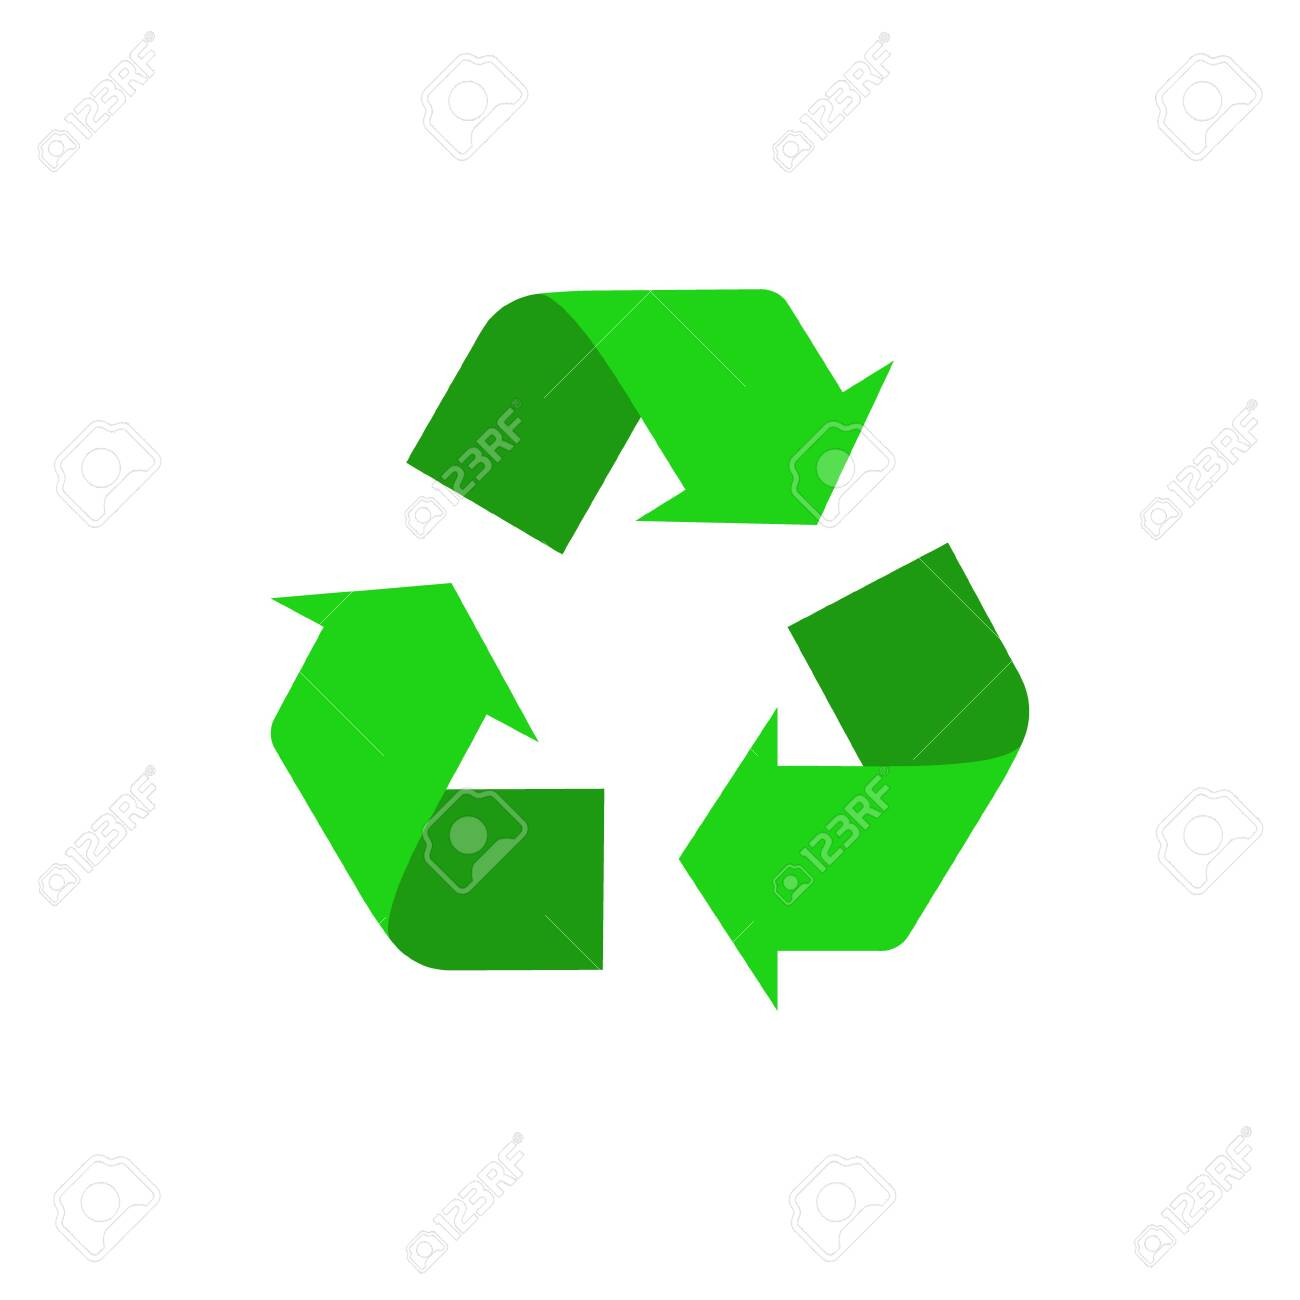 Vector illstration of recycle icon. Flat design. Isolated. - 138730503